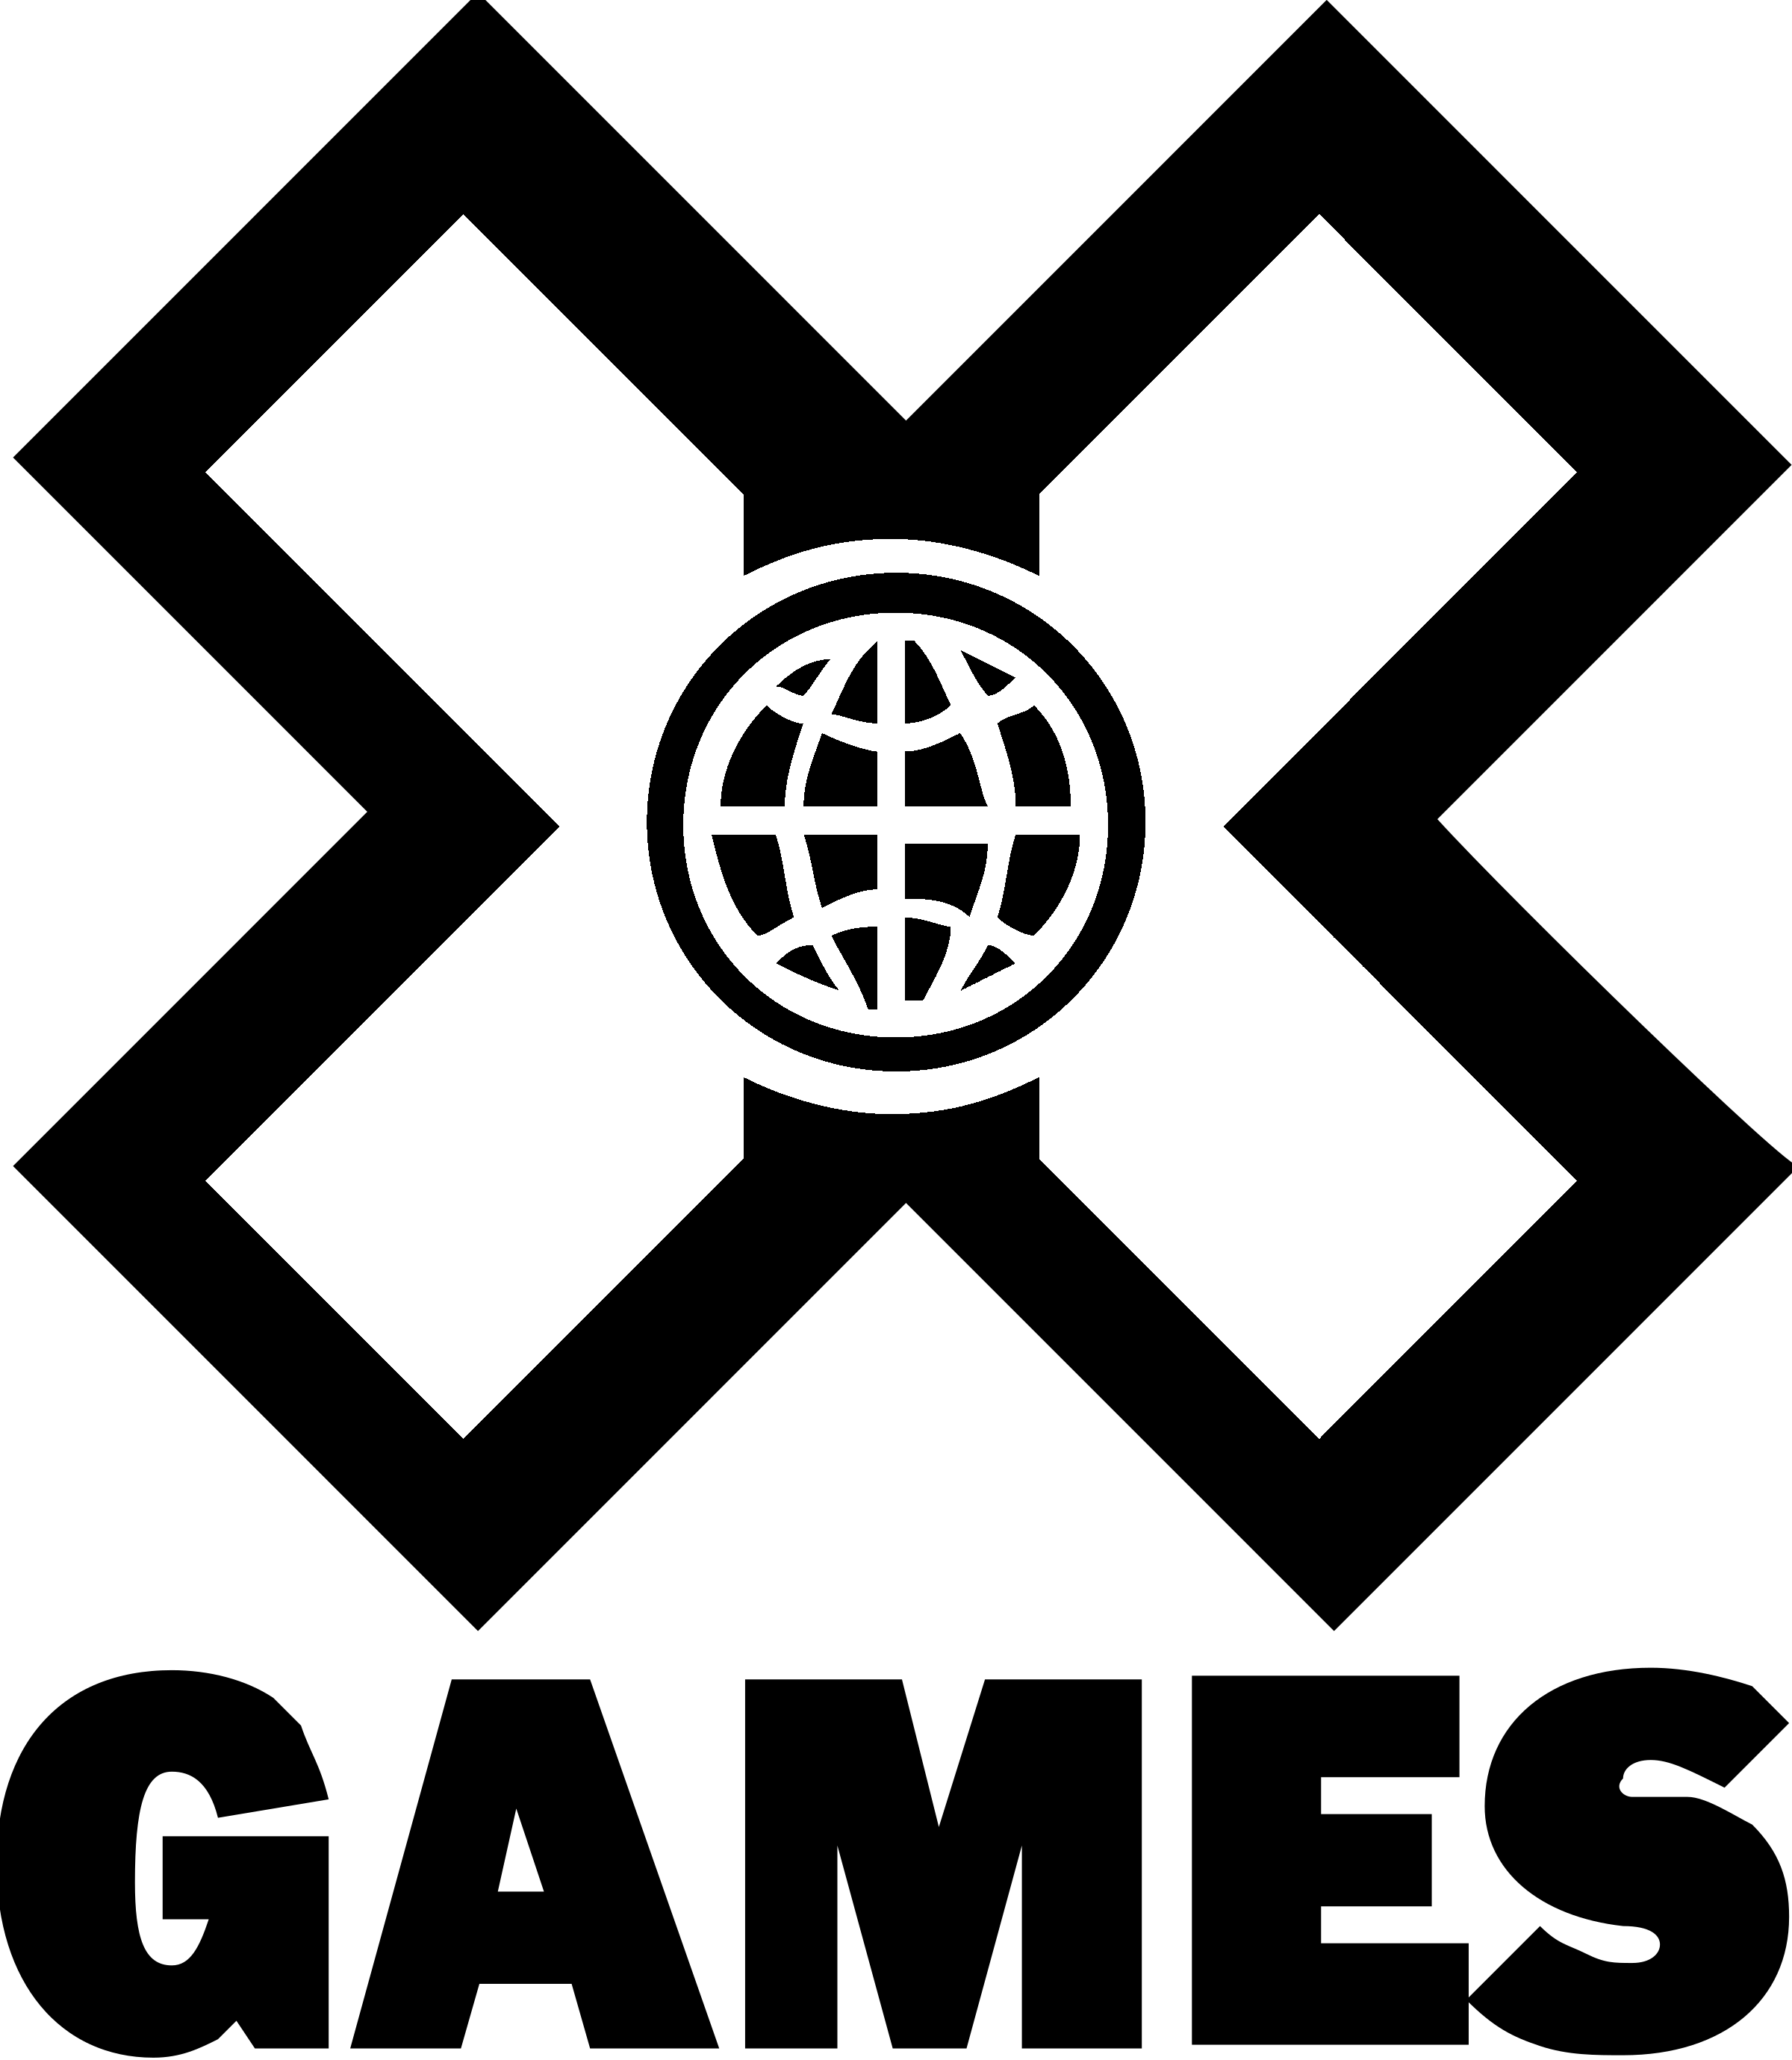 Game Black And White Png - X Games Logo PNG Transparent & SVG Vector - Freebie Supply